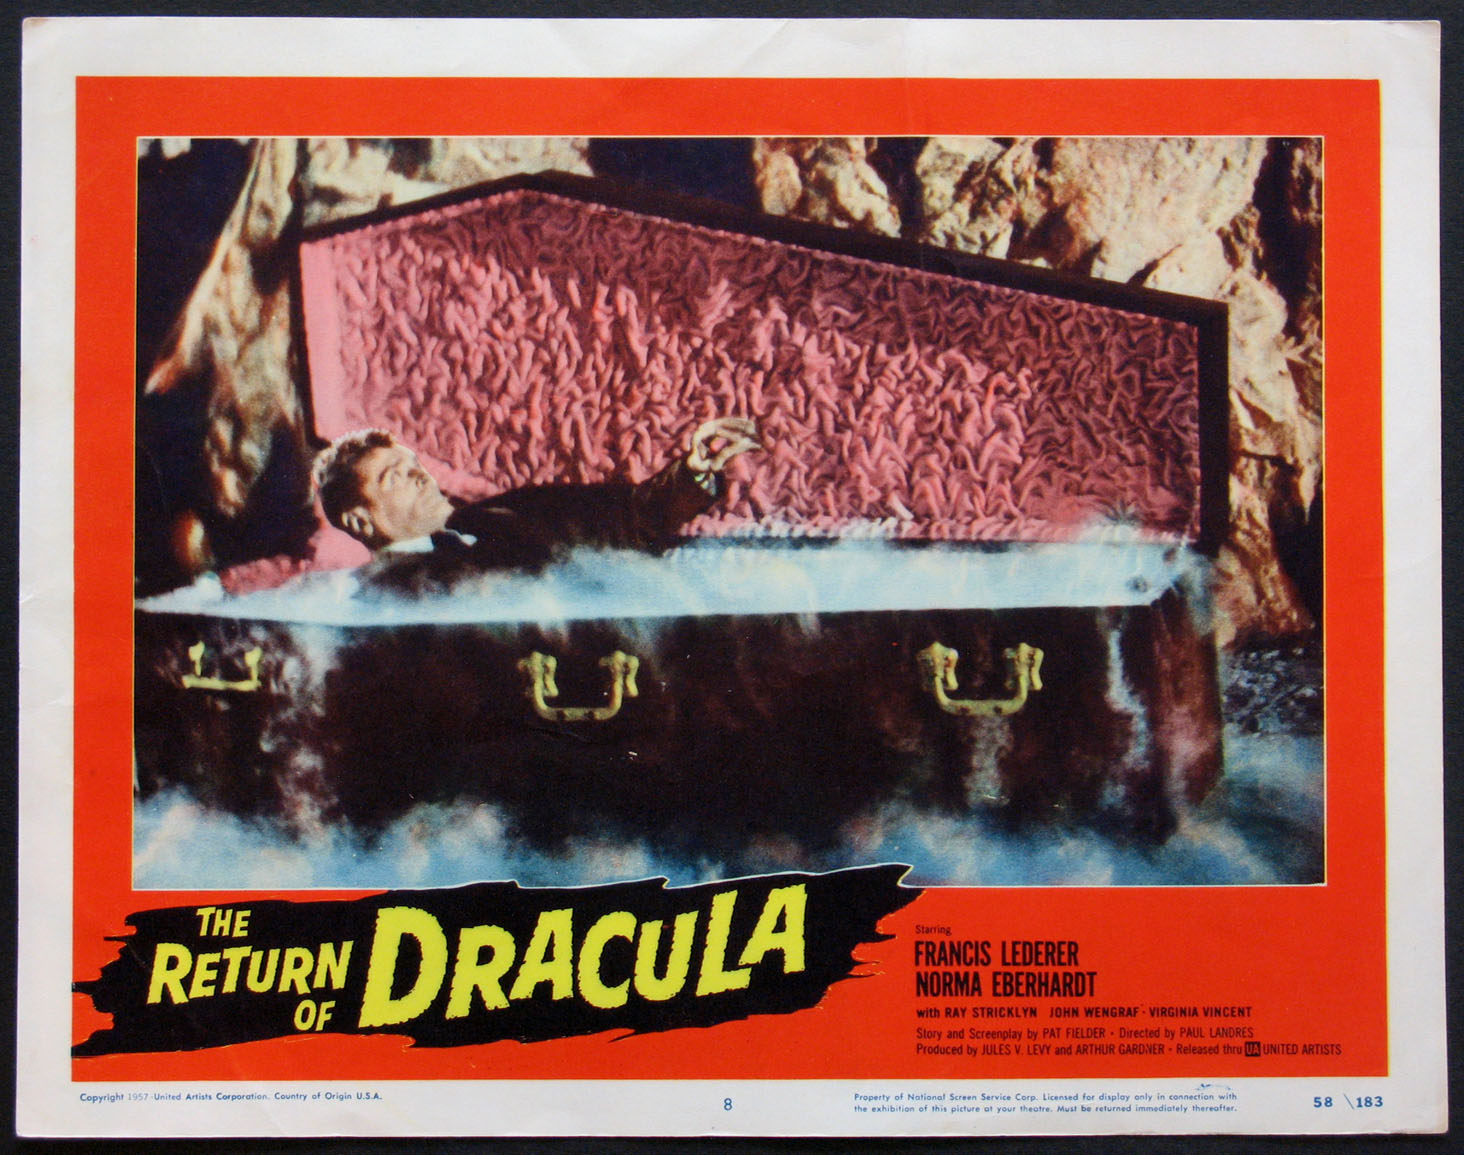 RETURN OF DRACULA, THE @ FilmPosters.com